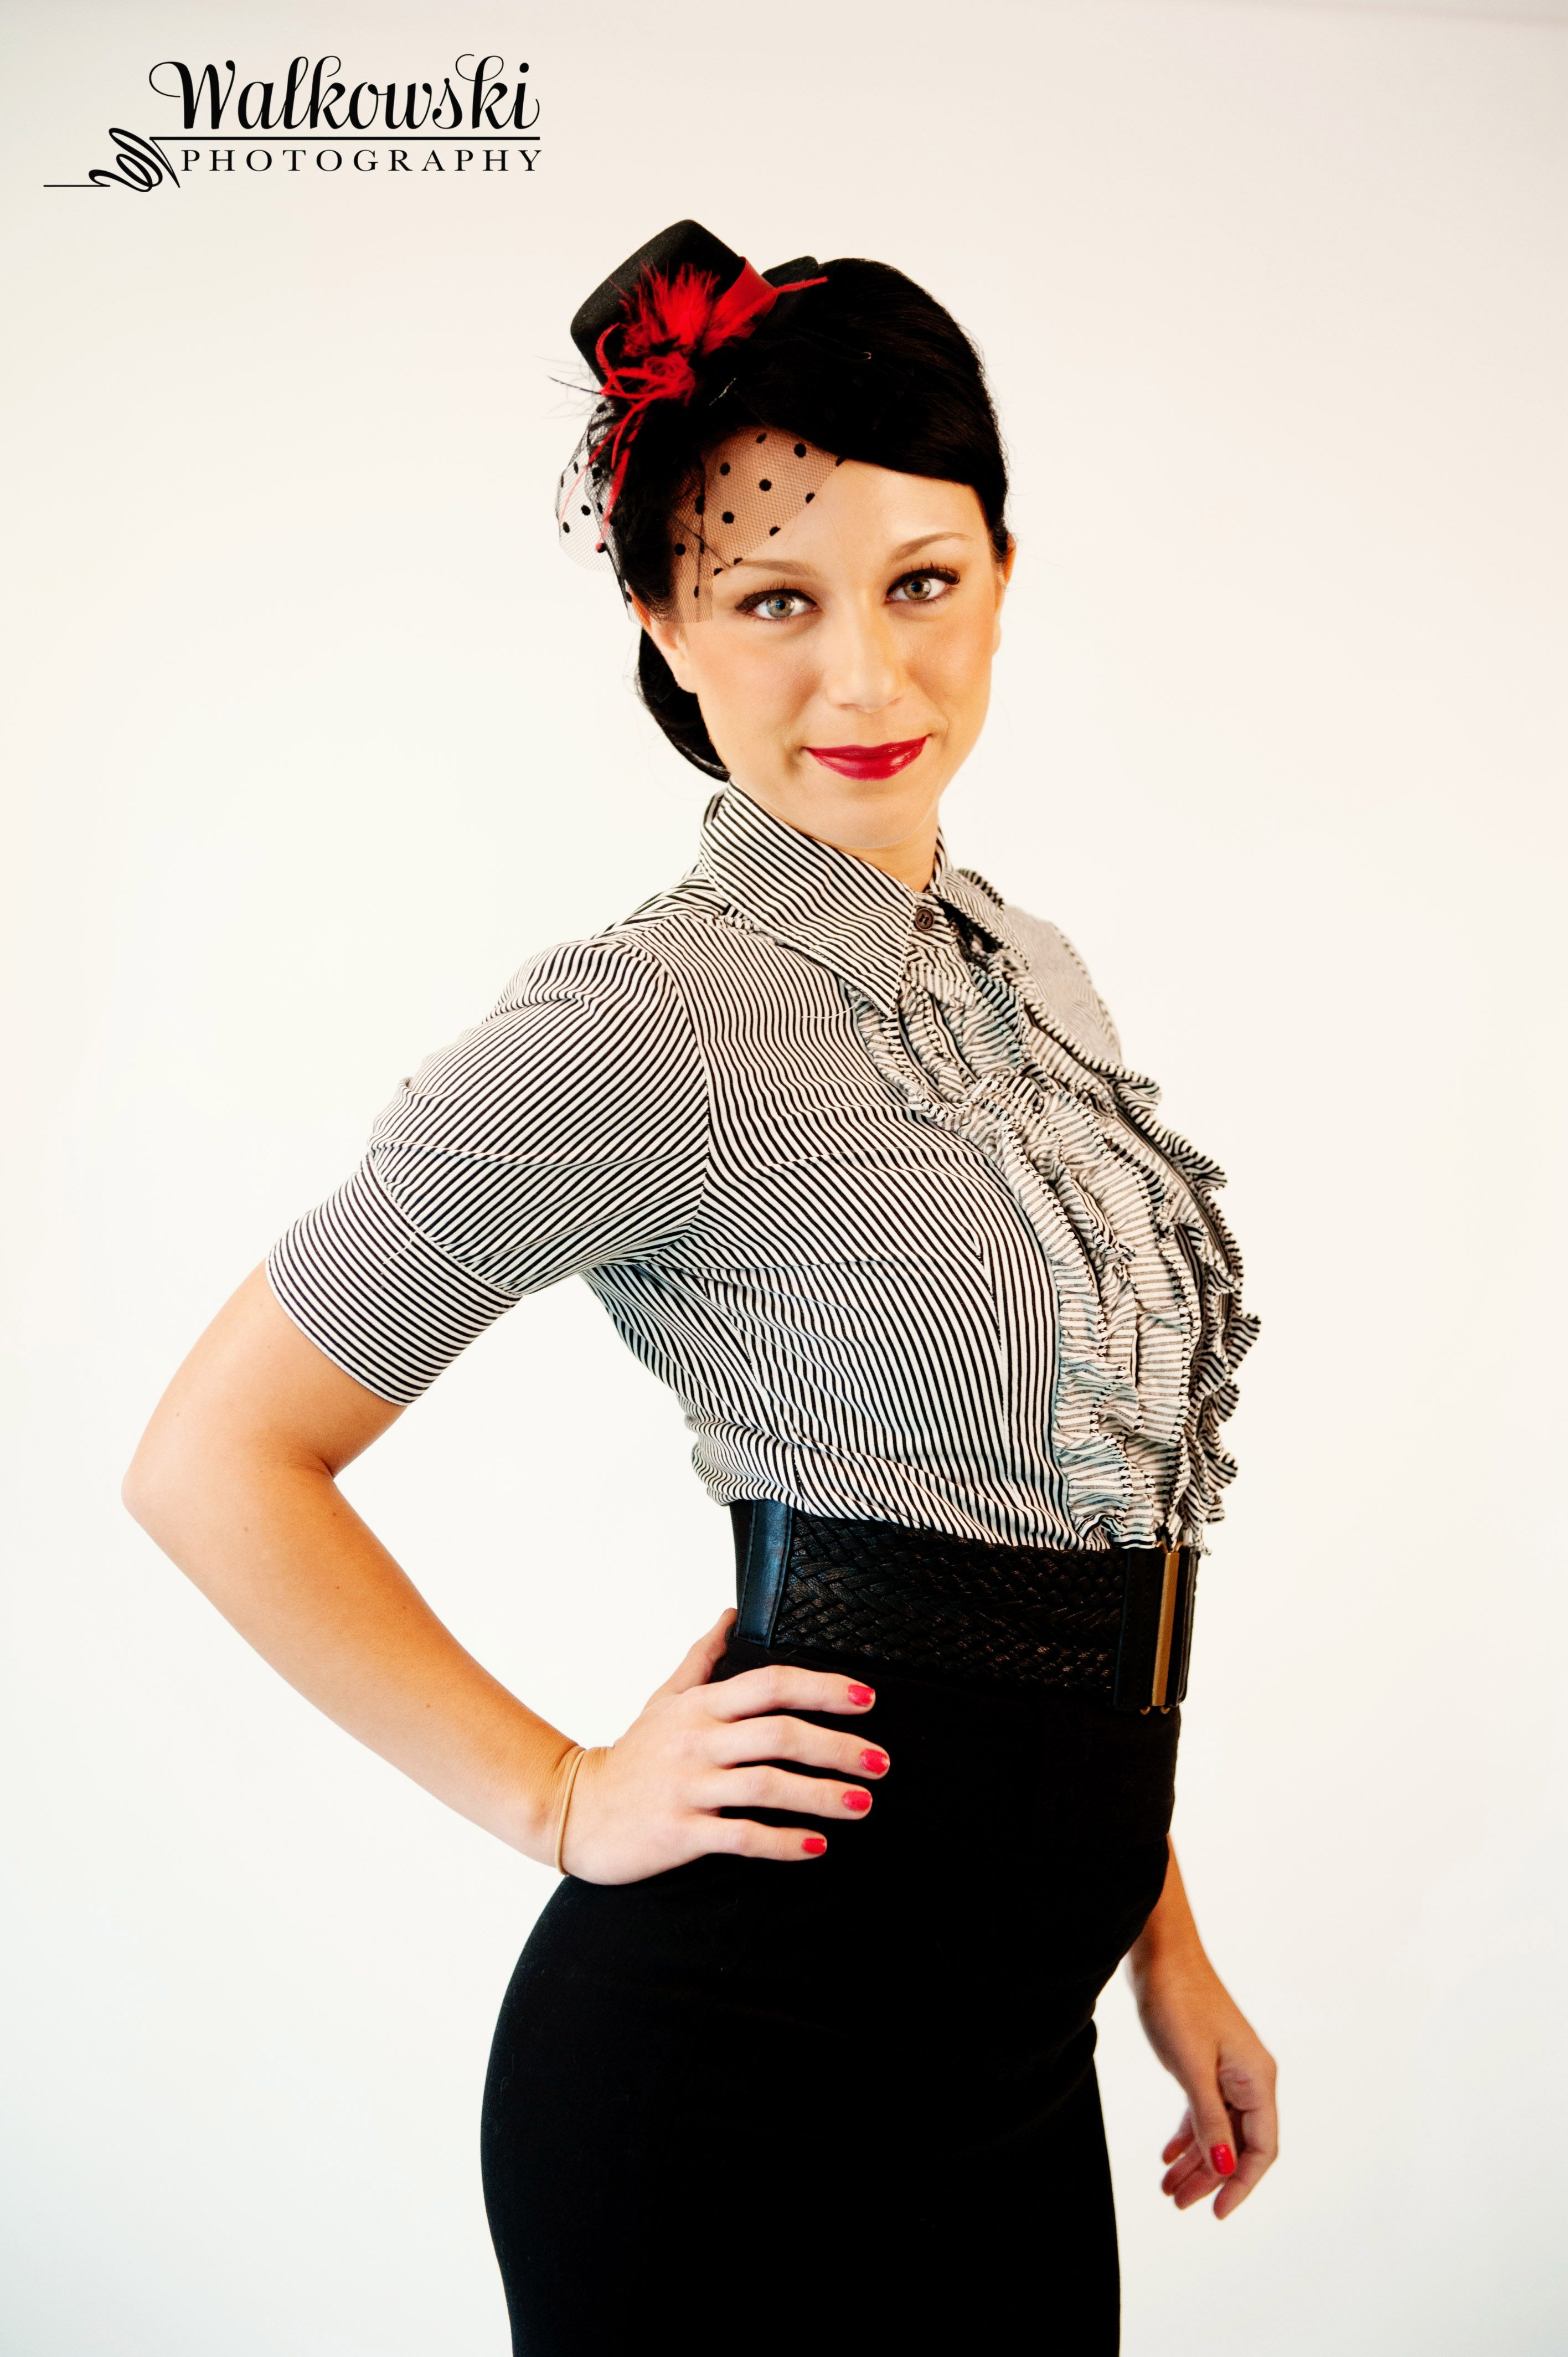 More Forties Inspired Flair: More Hair & Makeup Styling Using 1940s And 50s Glam As